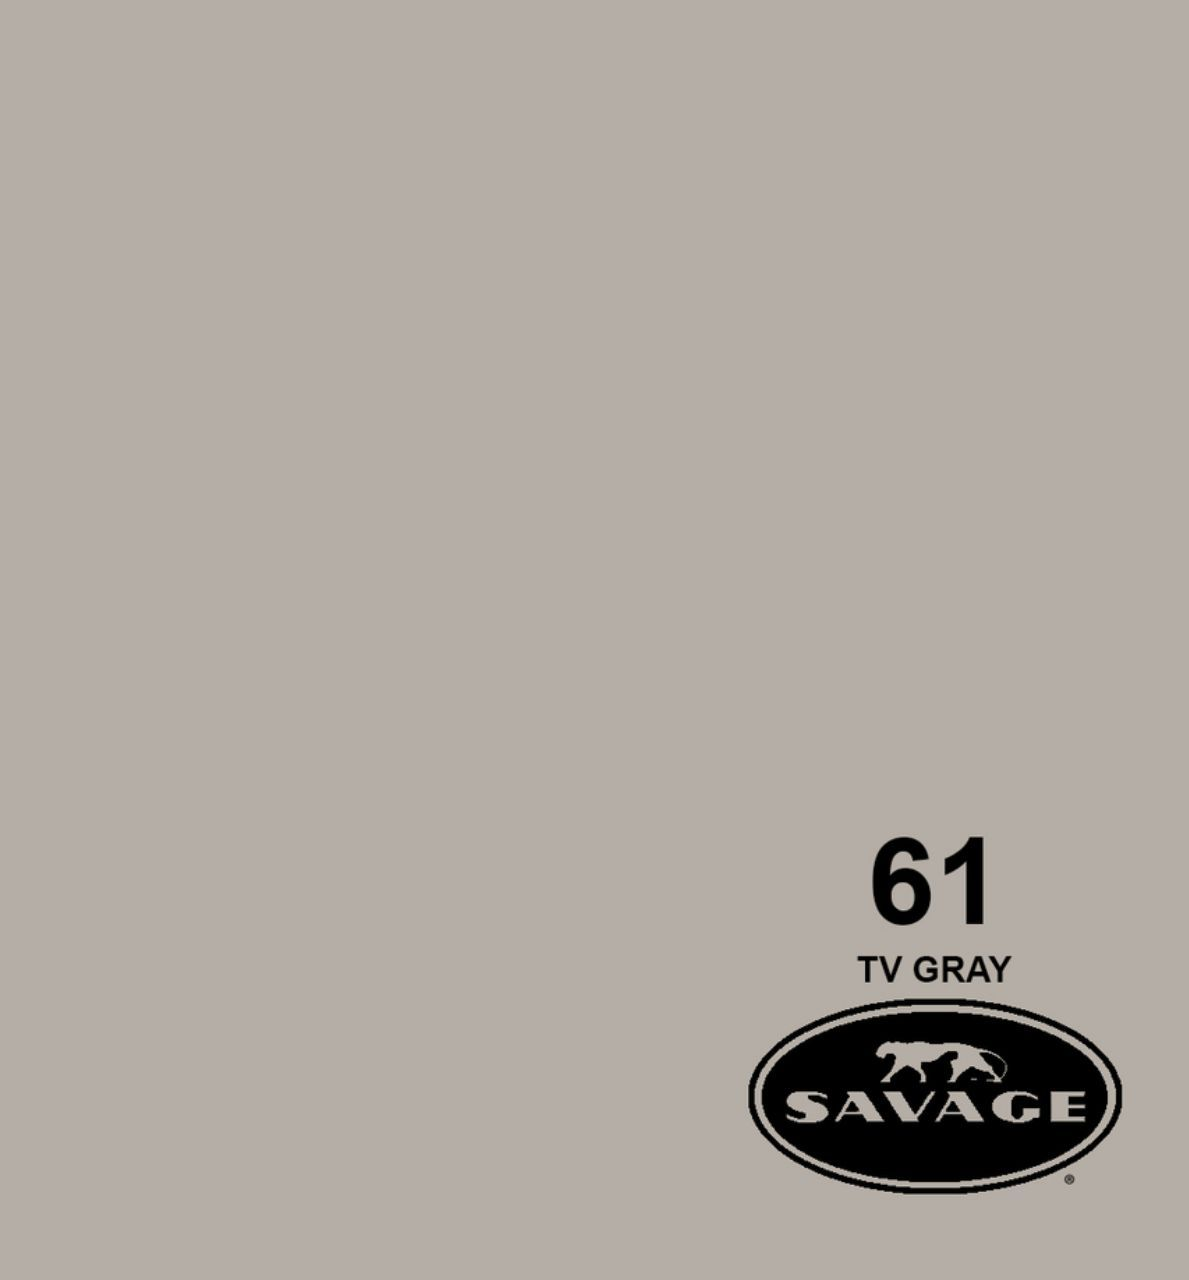 فون کاغذی Savage #61 tv gray 11*3